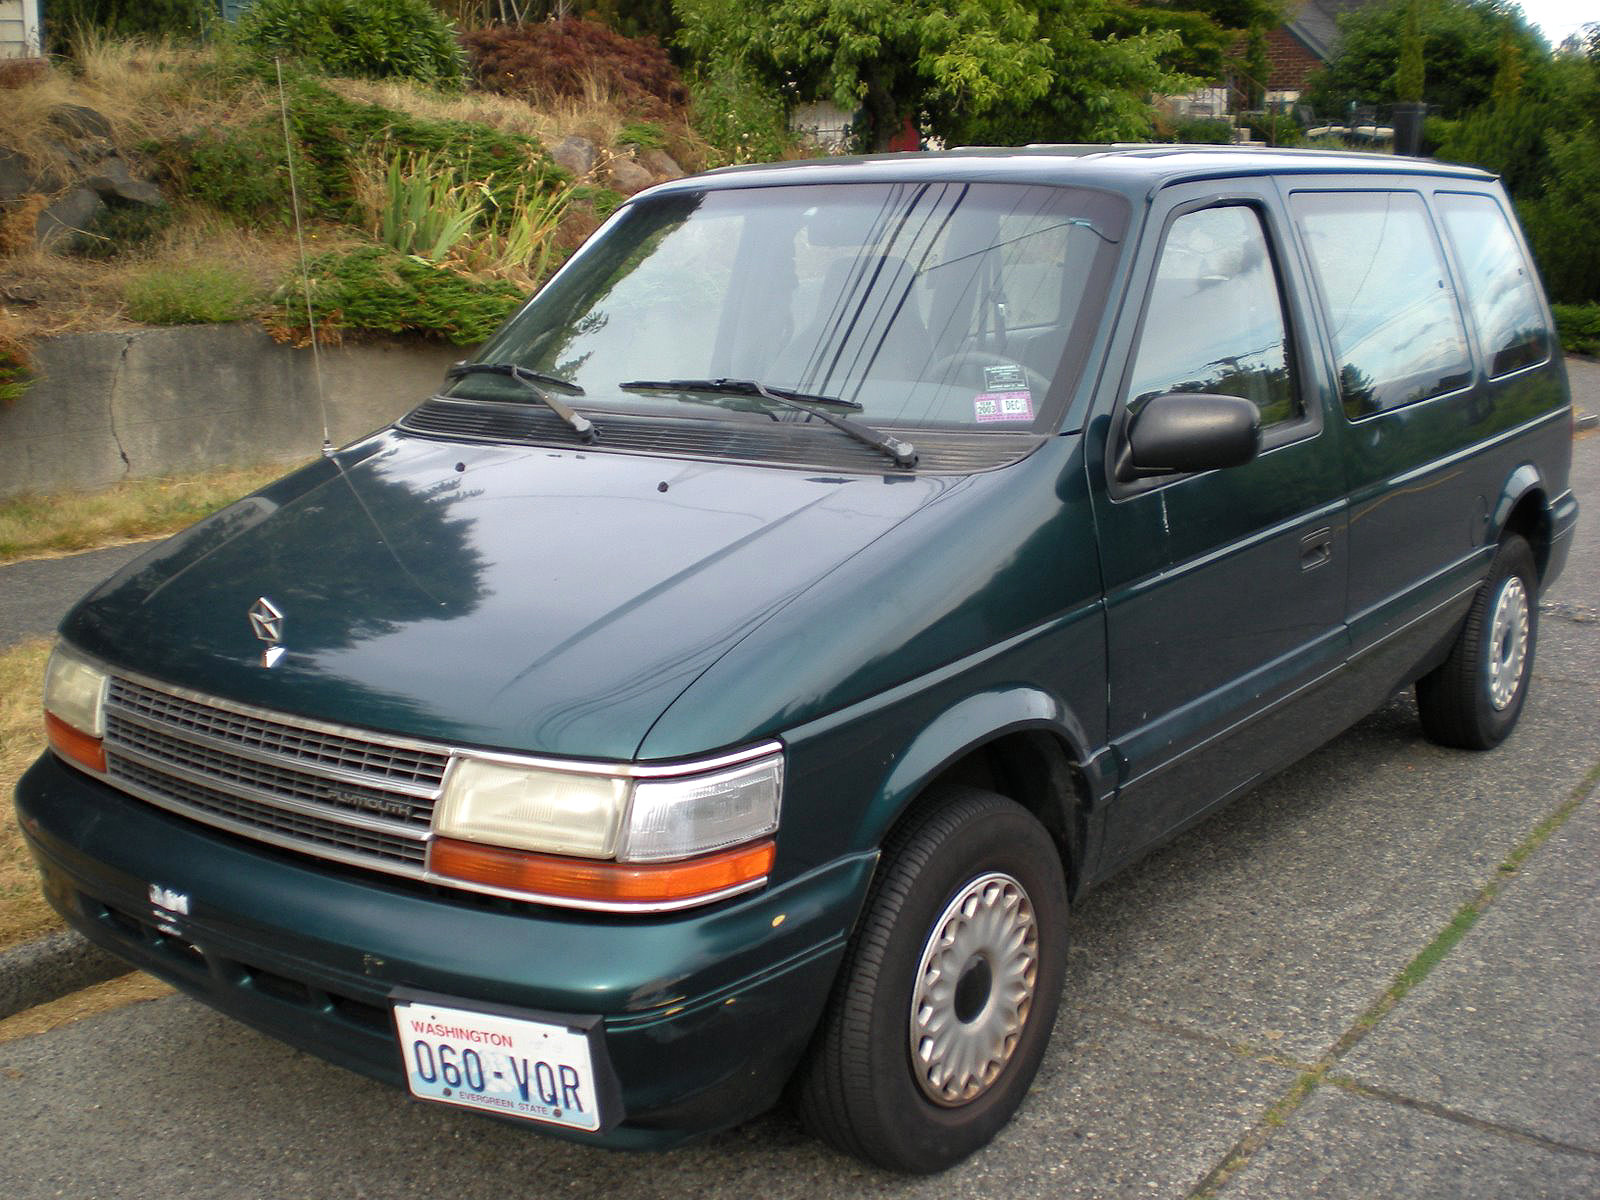 Plymouth voyager photo - 6